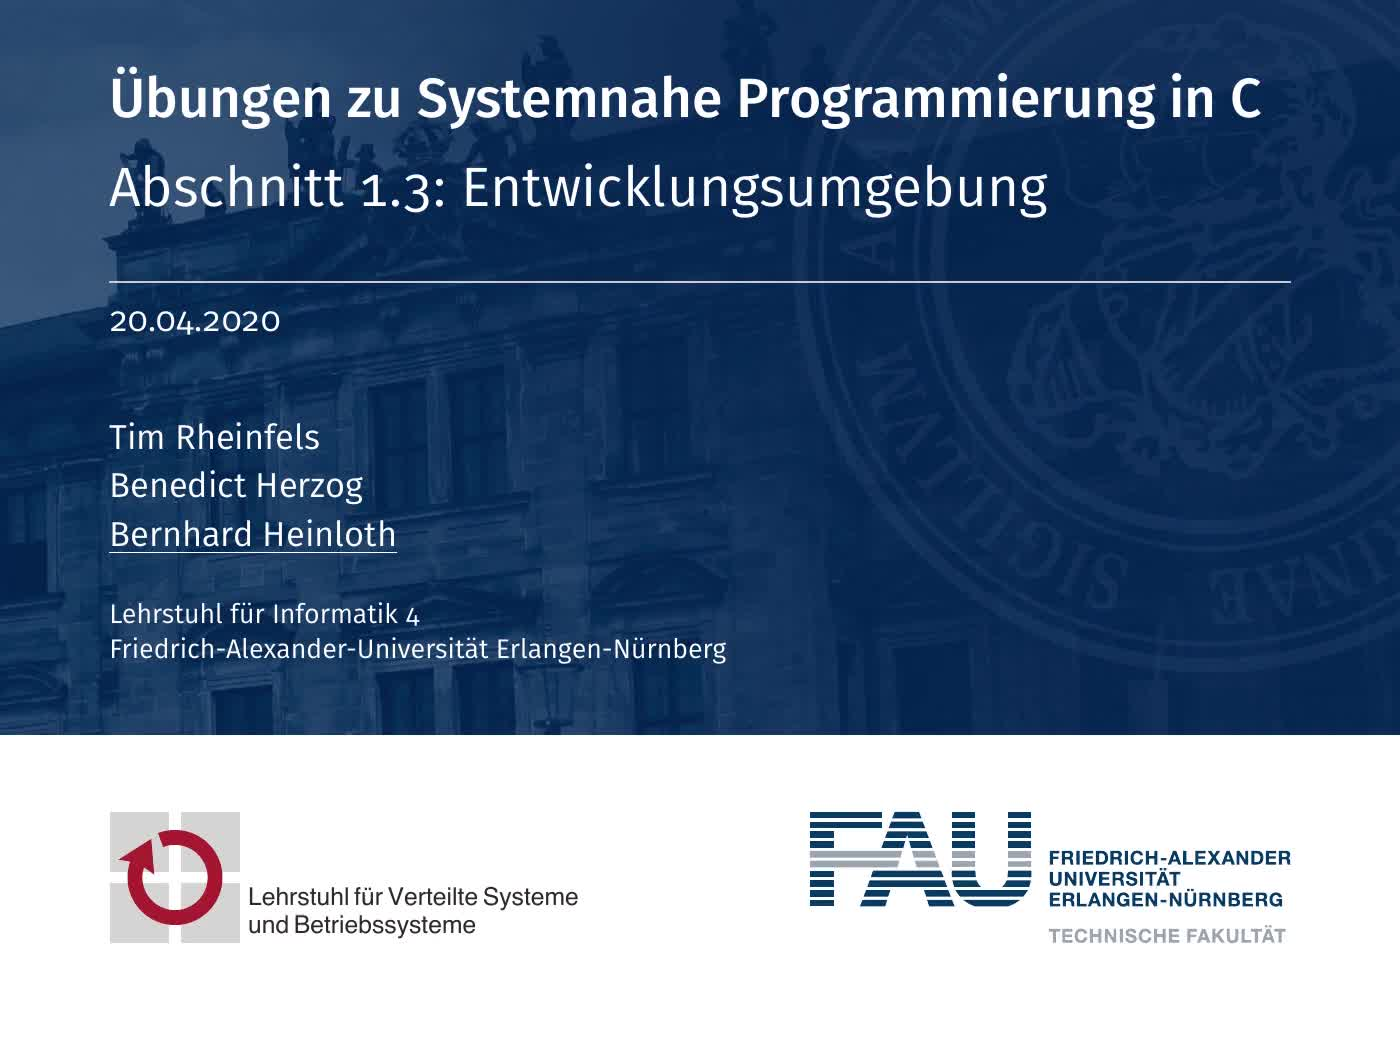 01.3: Entwicklungsumgebung (SPiC IDE) preview image